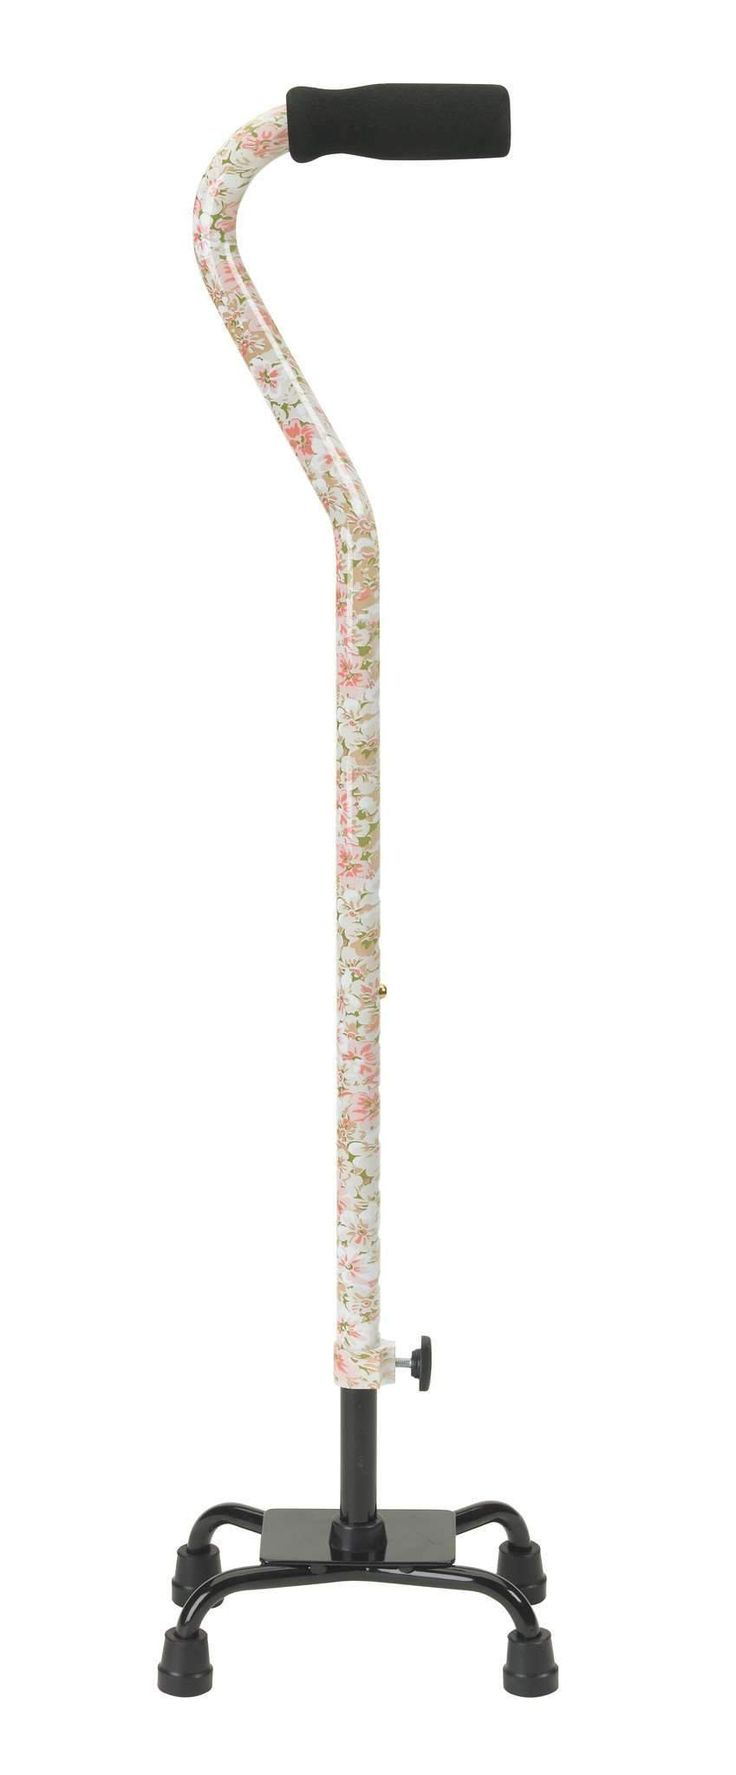 Drive 10312fp-1 Small Base Quad Cane with Foam Rubber Hand Grip